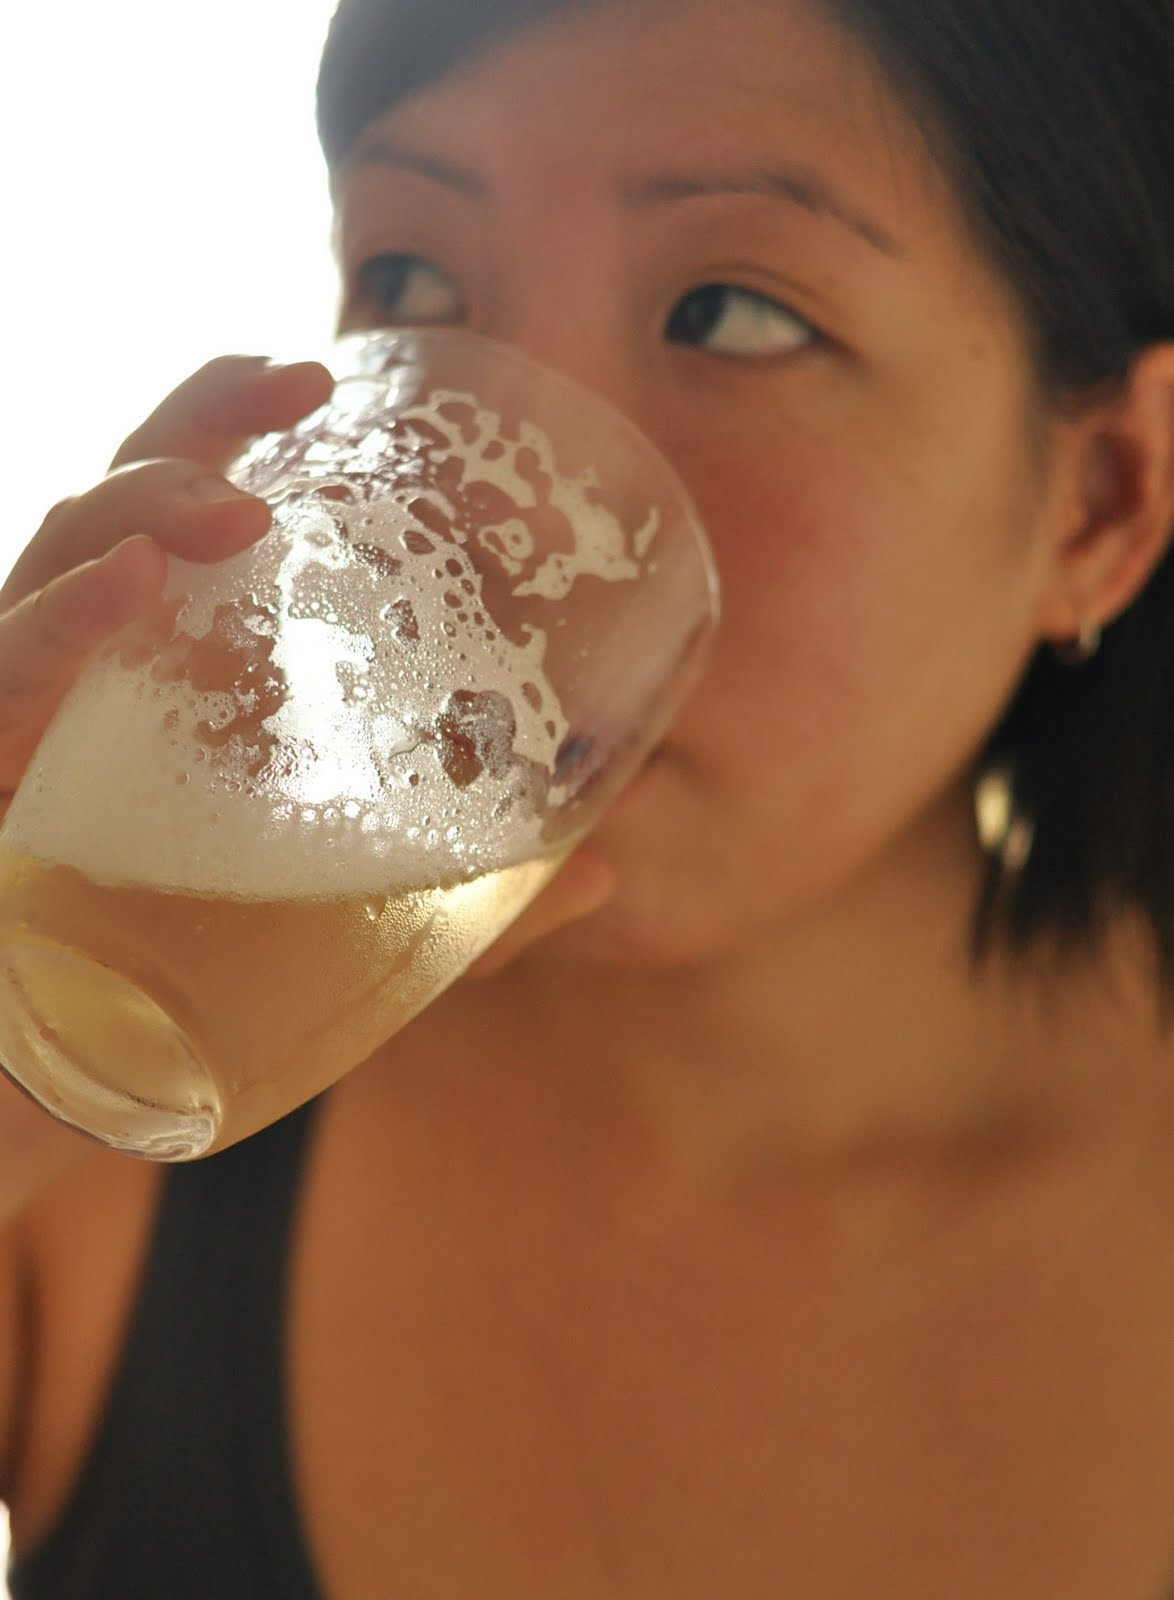 yet another thirst-quenching drink that my sister is enjoying!